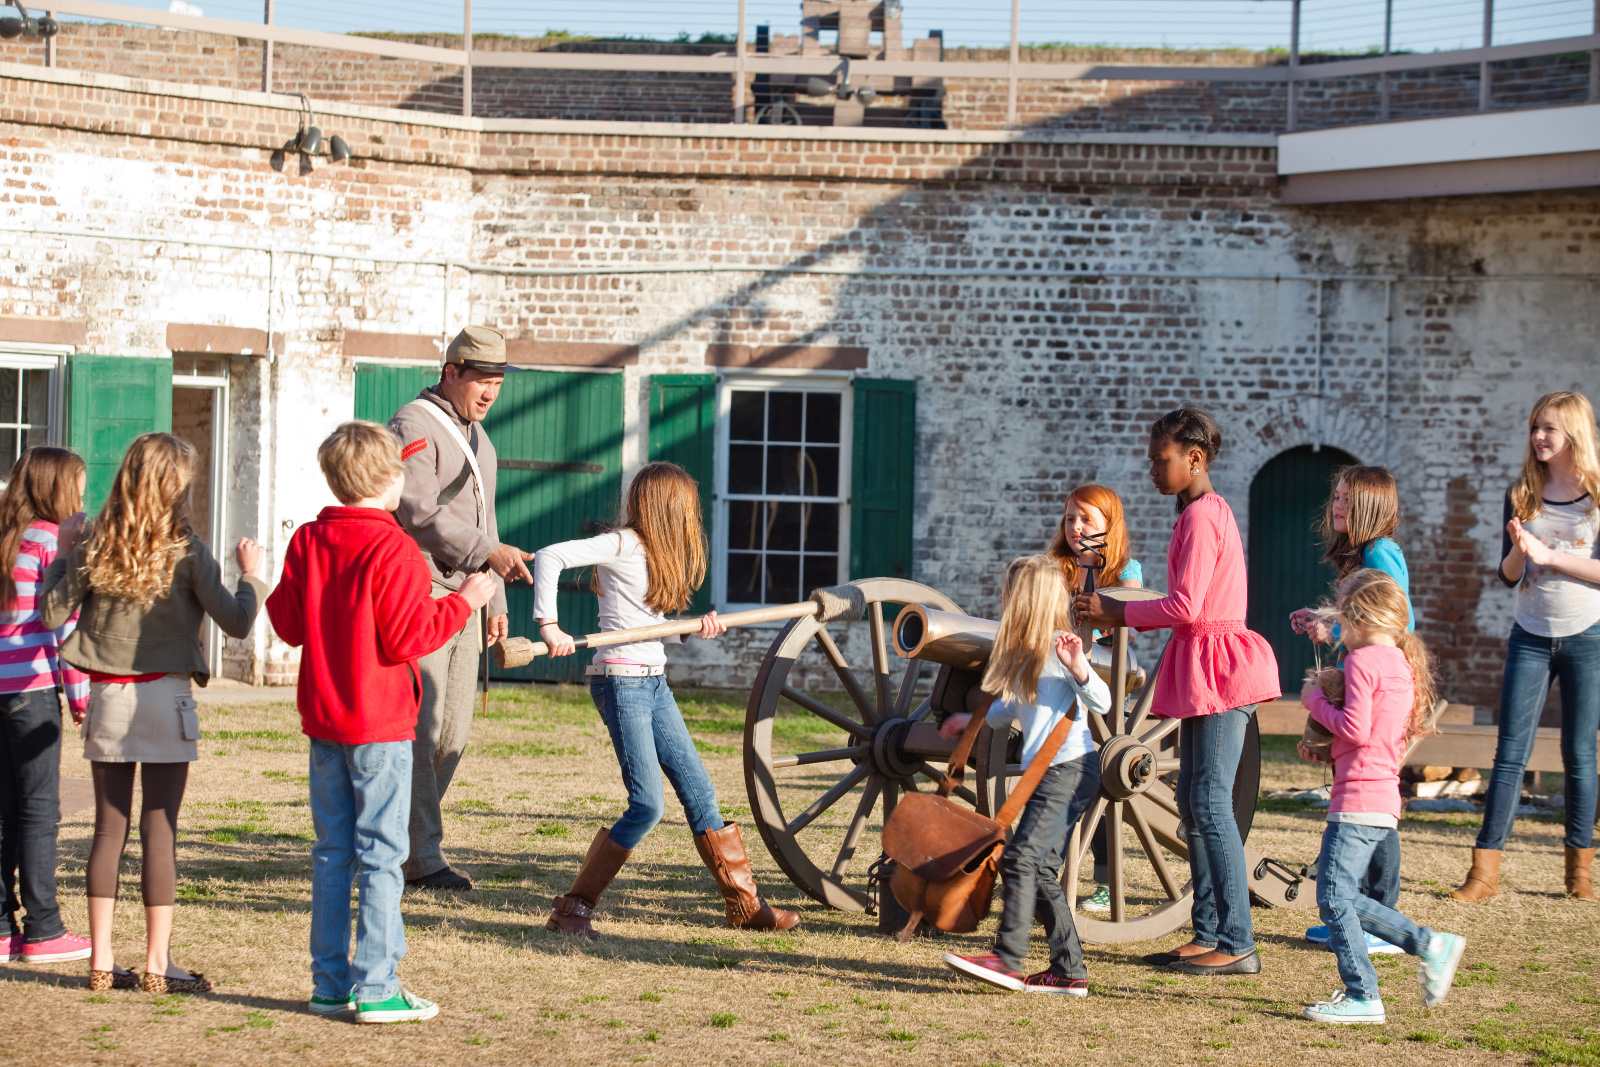 Used by Confederate forces as headquarters of the Savannah River defenses during the Civil War, Old Fort Jackson still has a functioning cannon. - GDEcD Photography